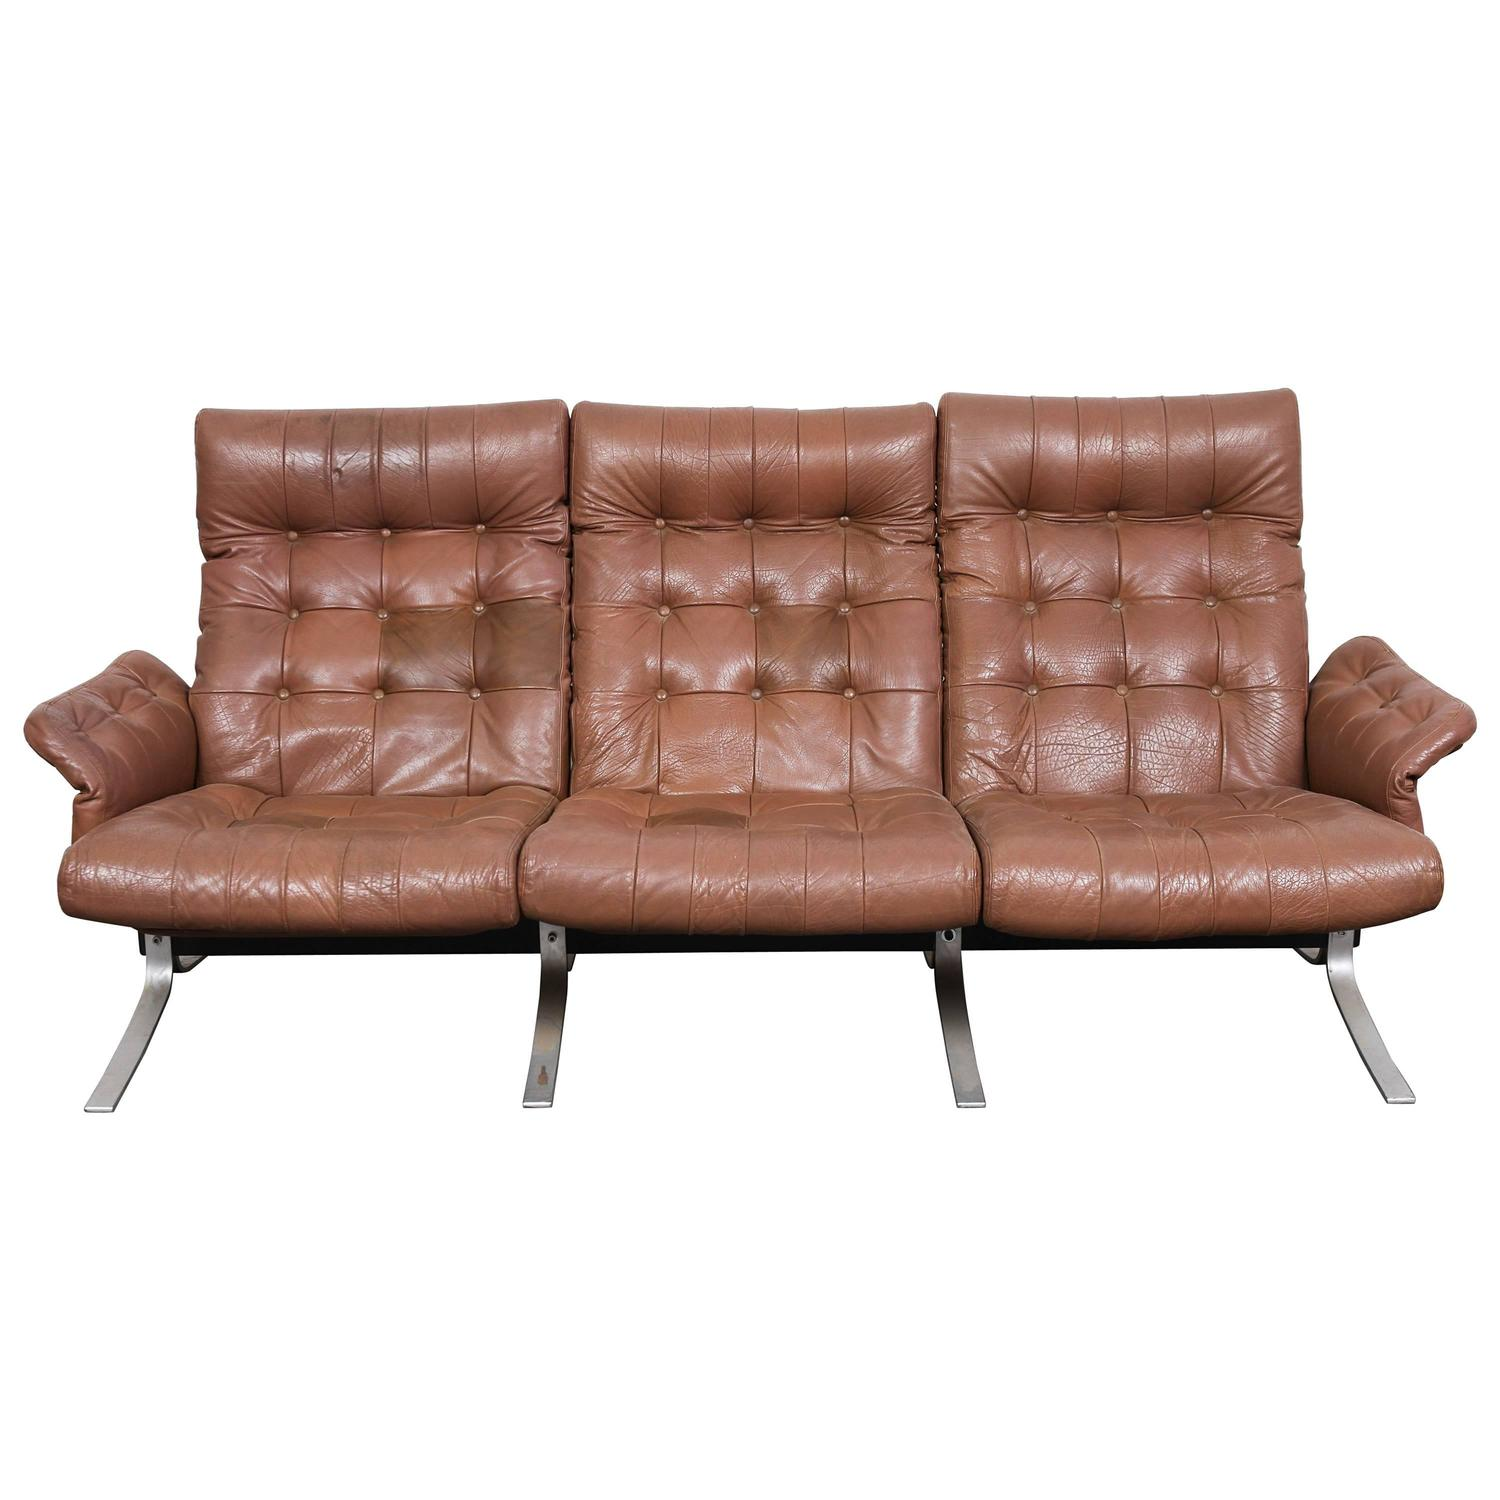 Danish Modern Sofa by S¸ren Lund For Sale at 1stdibs